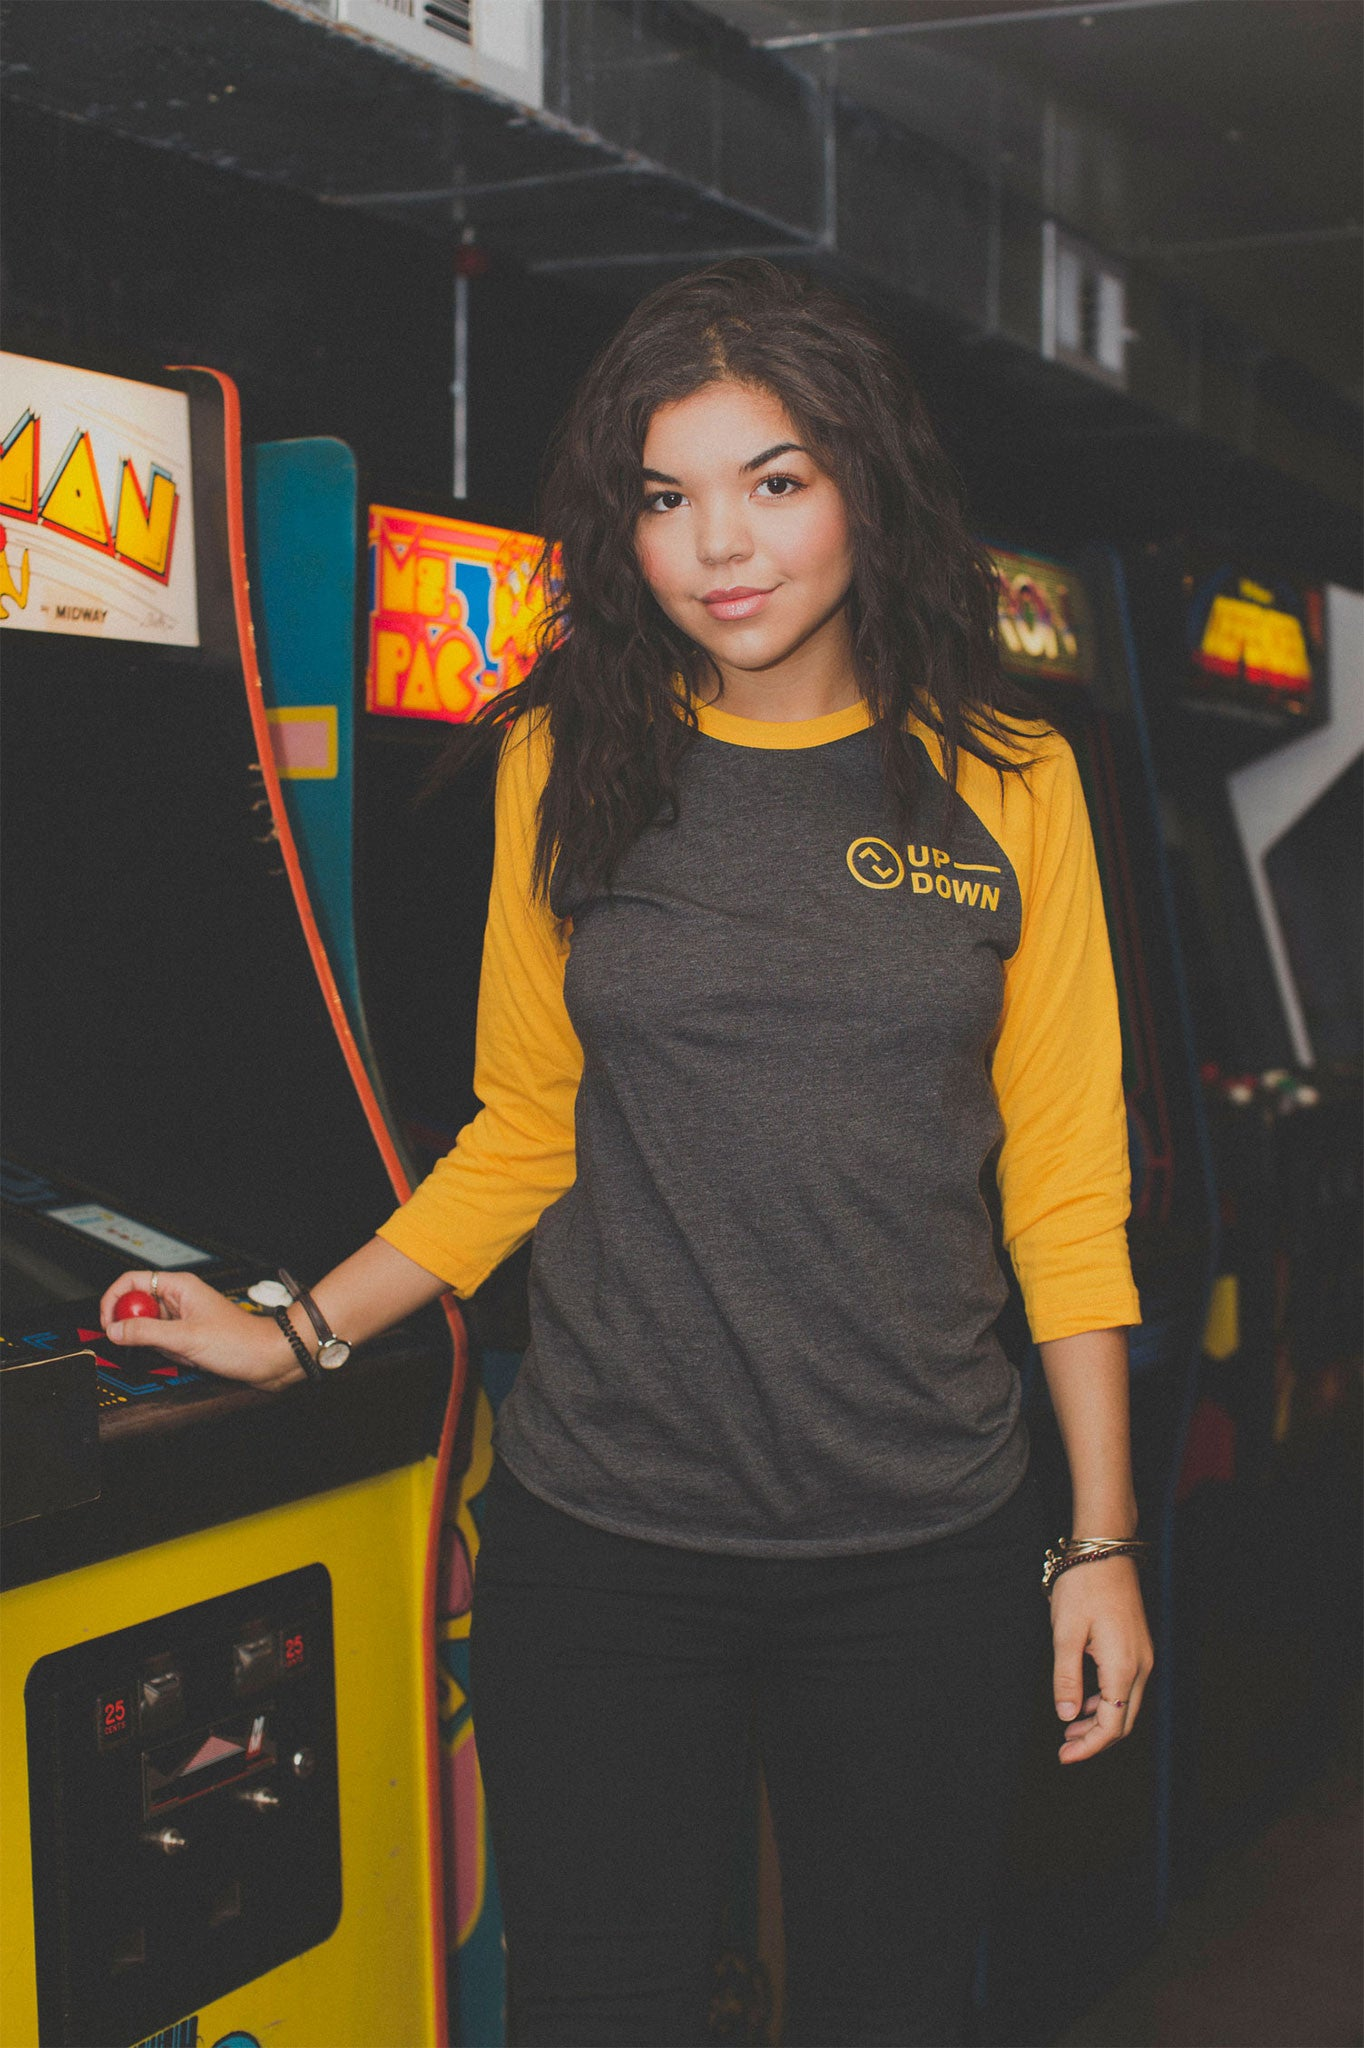 updown arcade bar baseball tee in yellow/grey